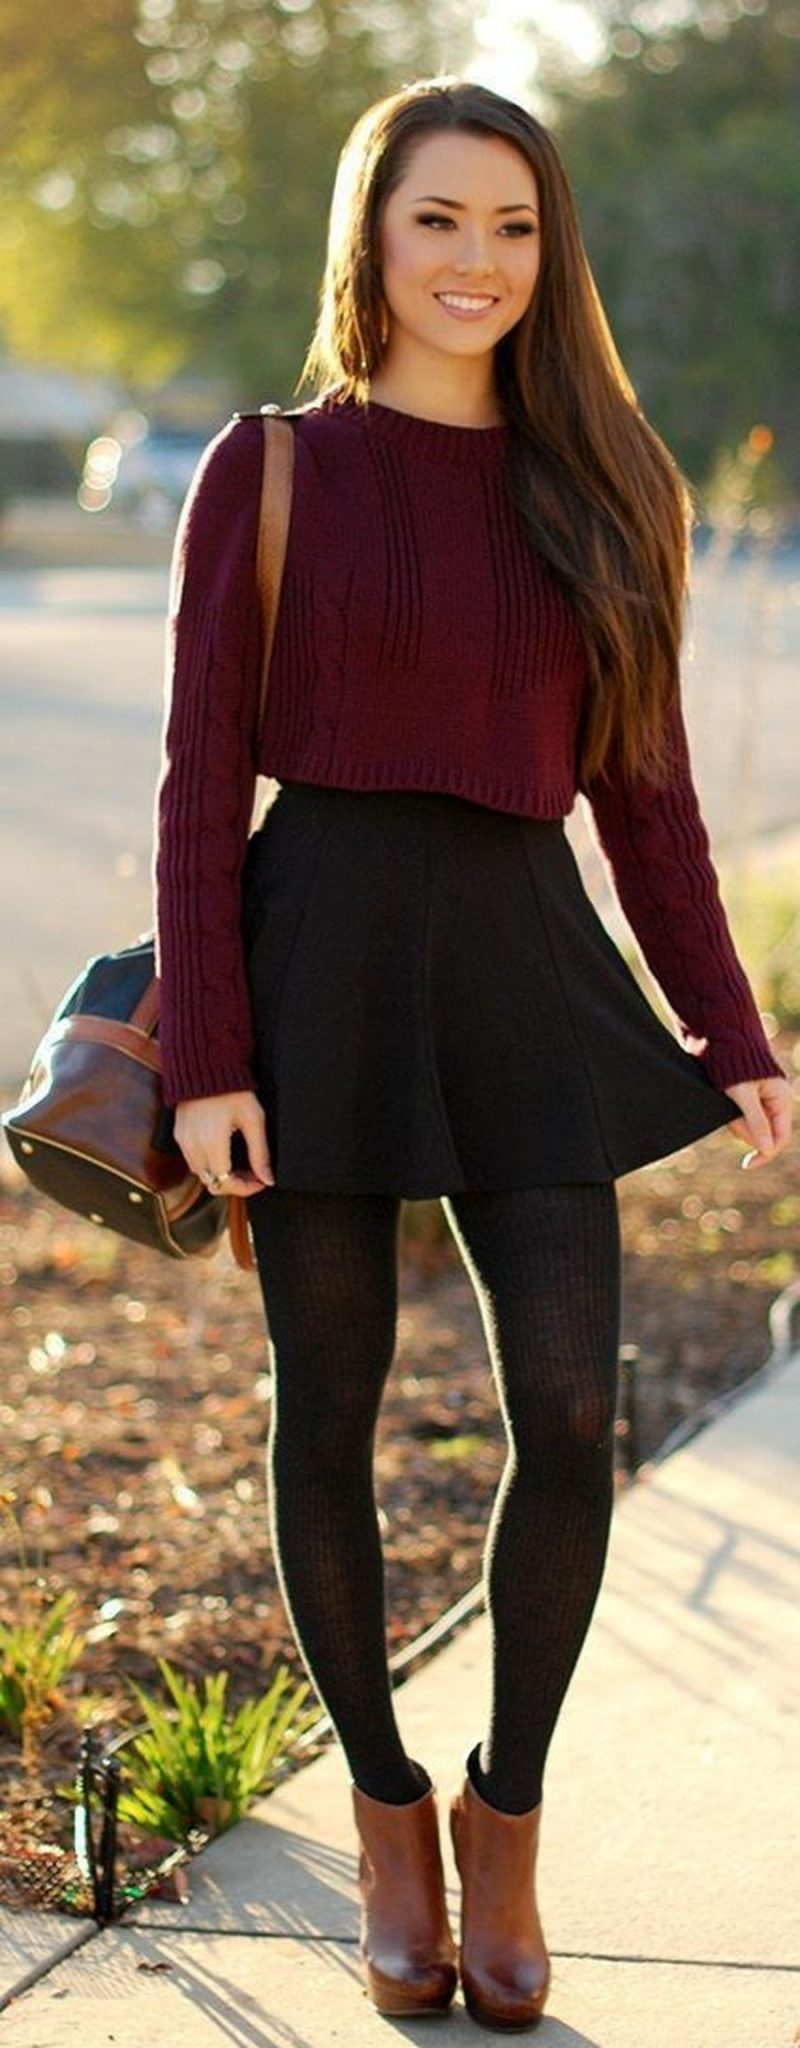 Inspiring skirt and boots combinations for fall and winter outfits 62